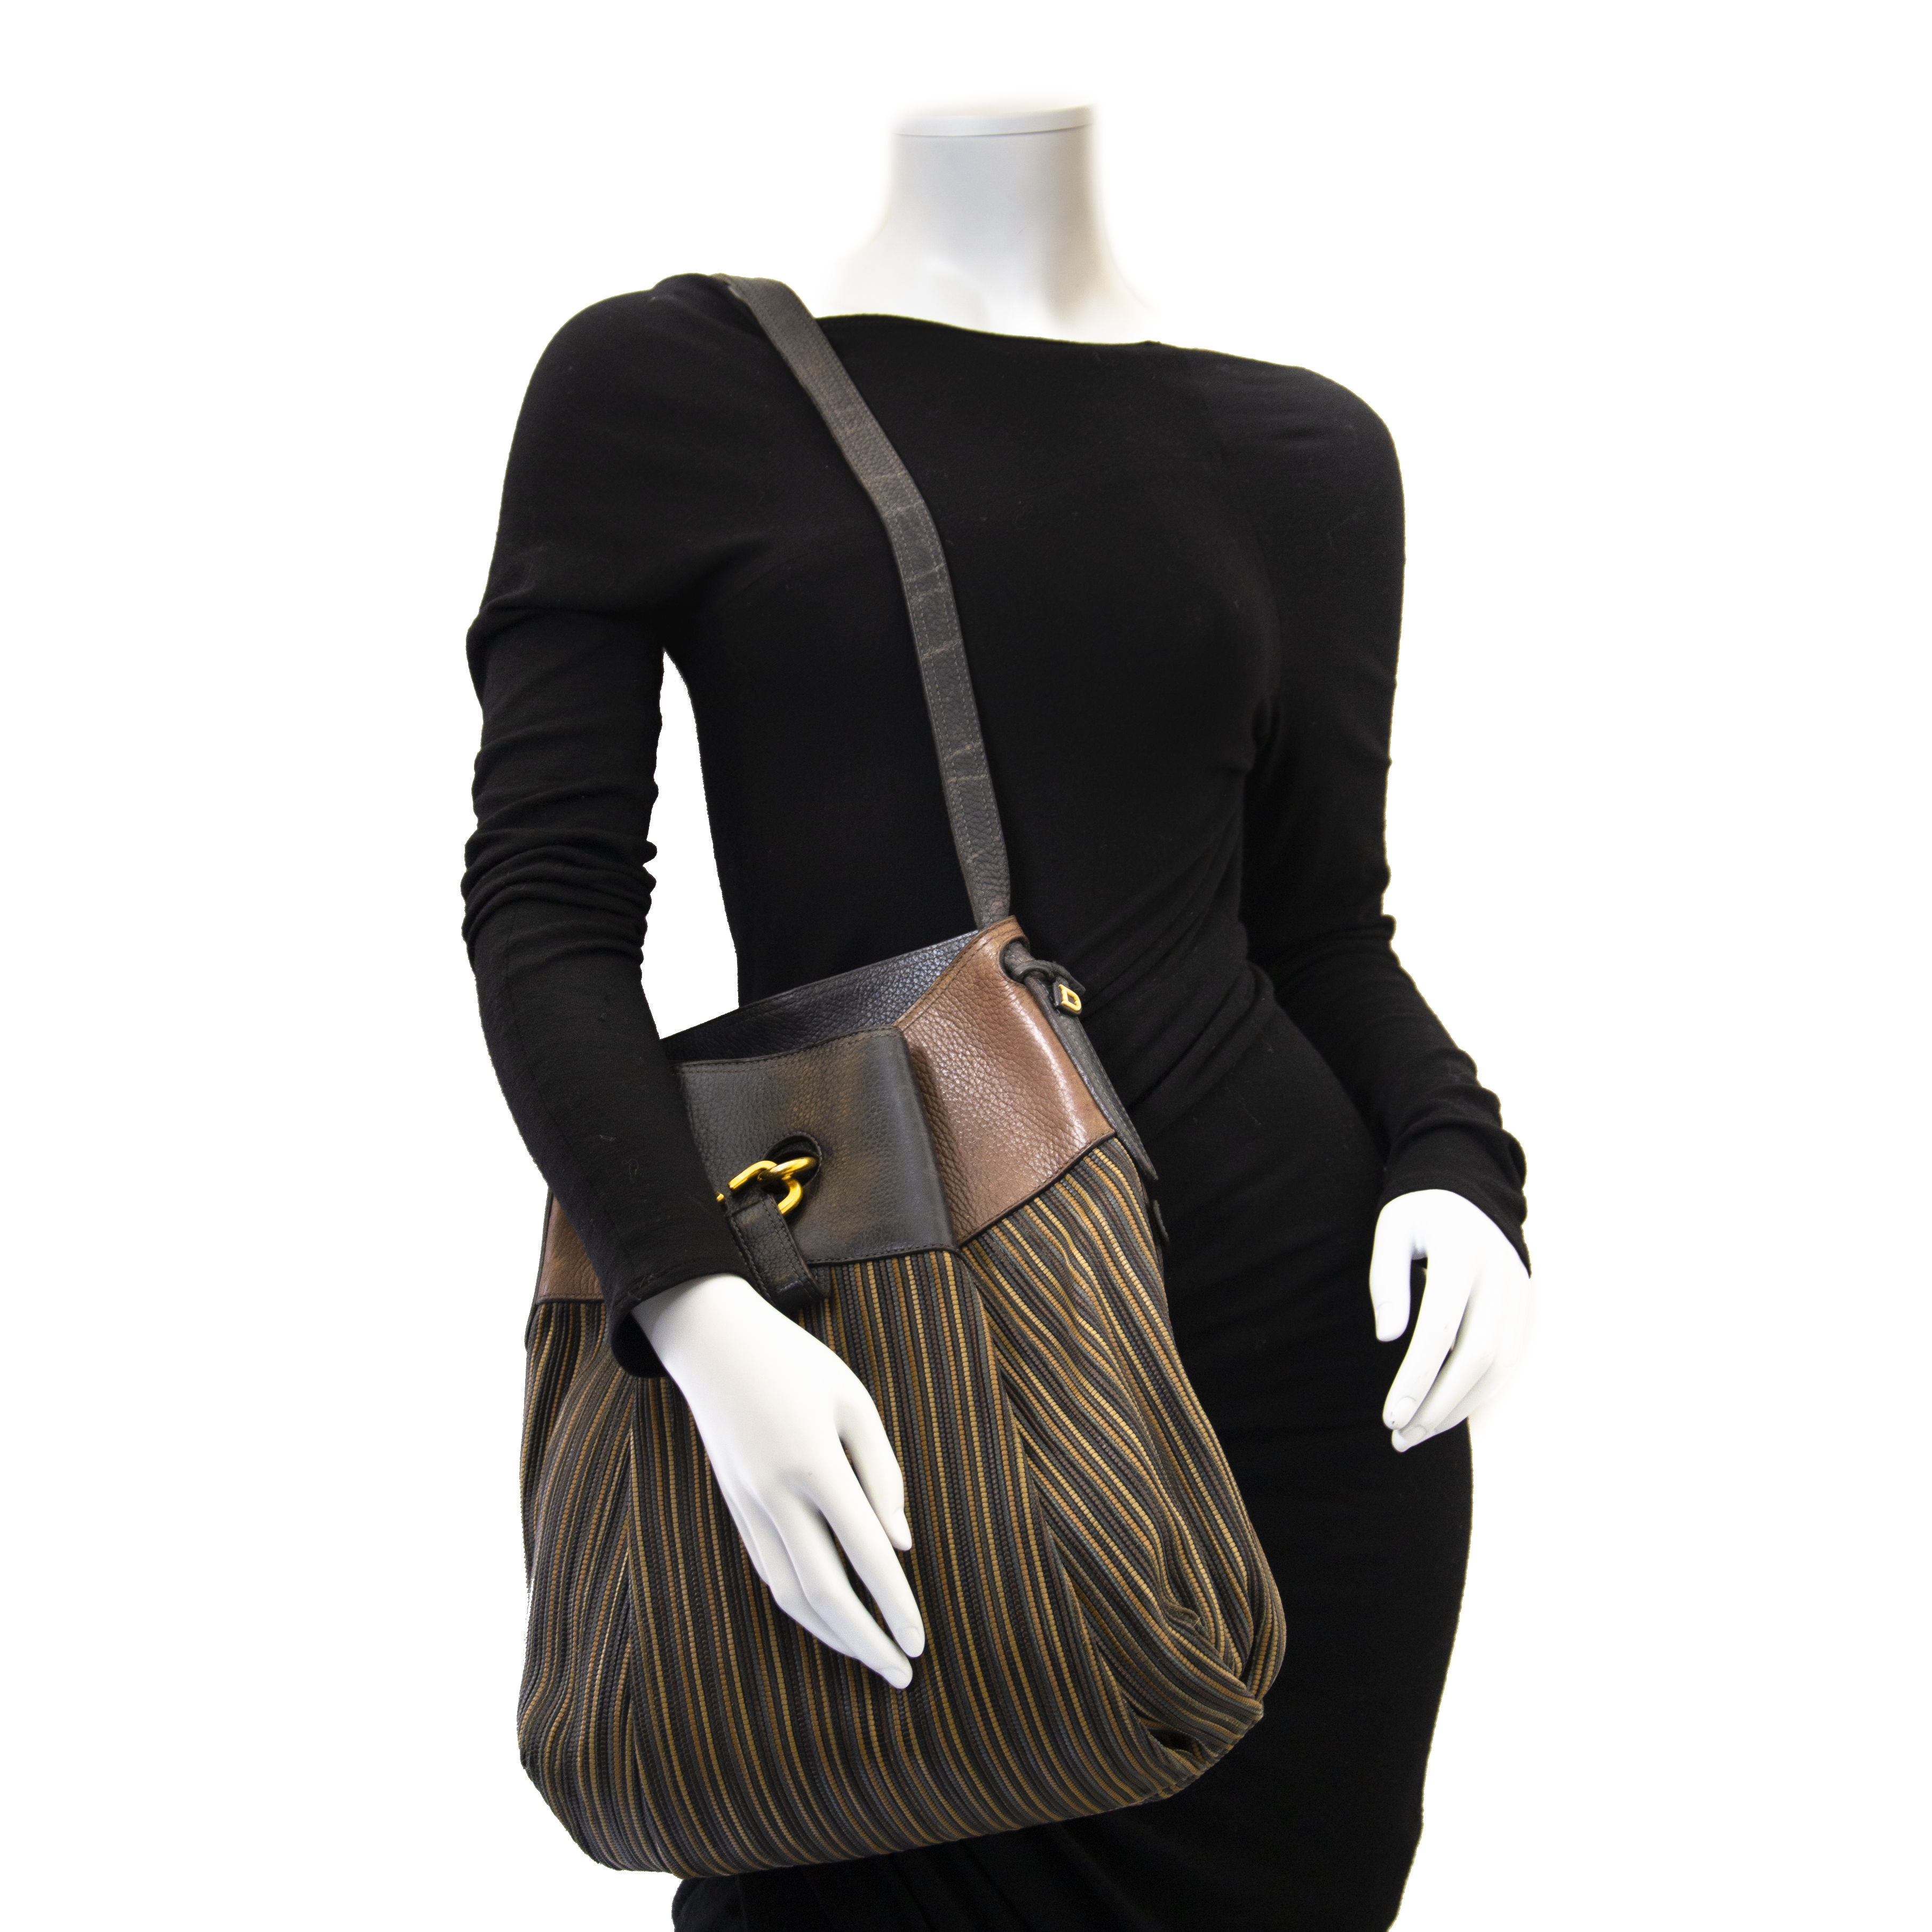 We buy and sell your authentic Delvaux Brown Toile De Cuir Faust Bag